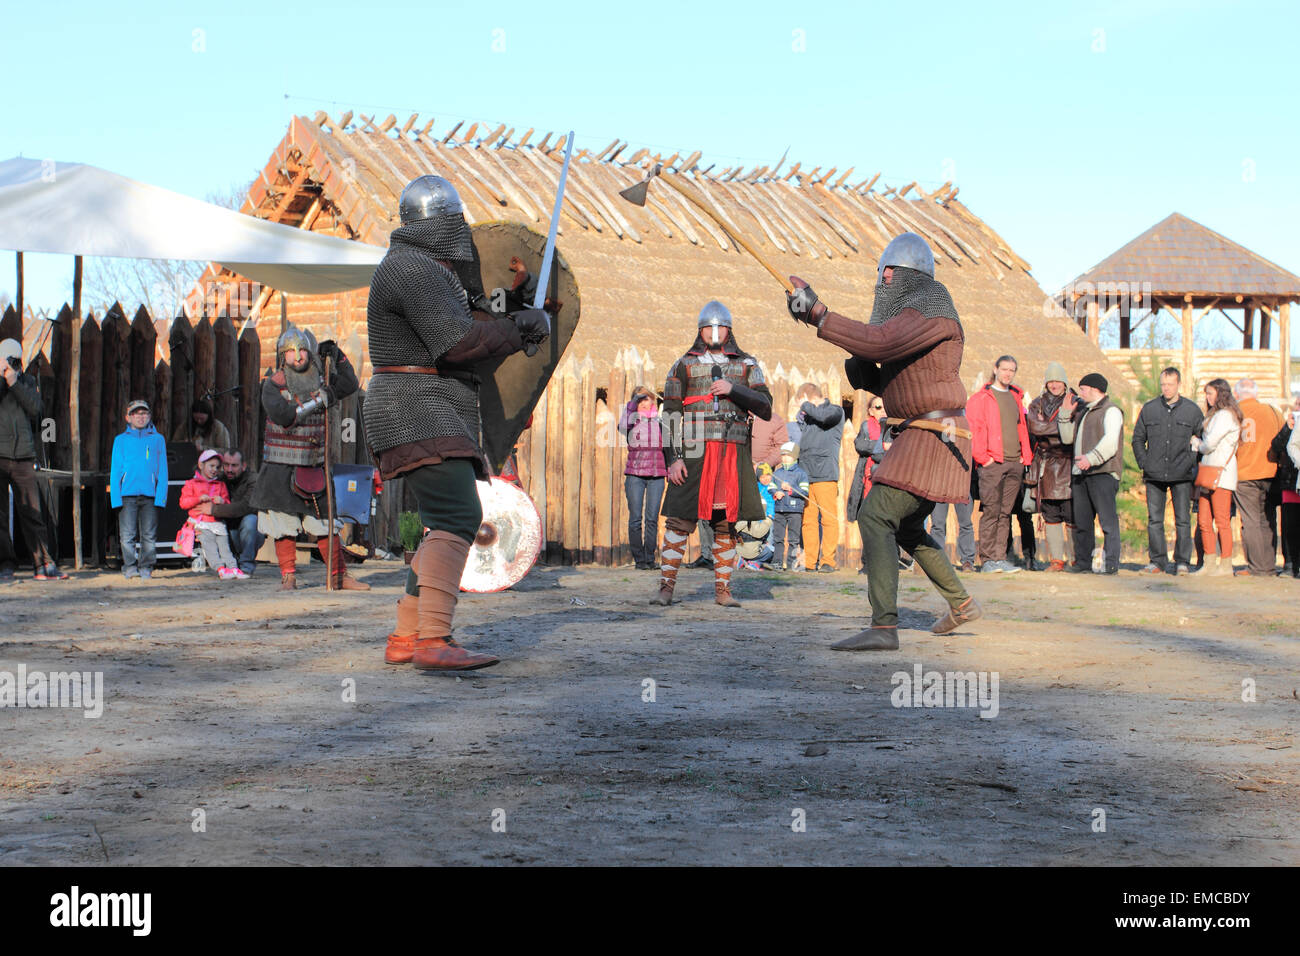 Medieval village in Slawutowo. Warriors fighting in acting battle for tourist attraction. Pomerania region, Poland. - Stock Image